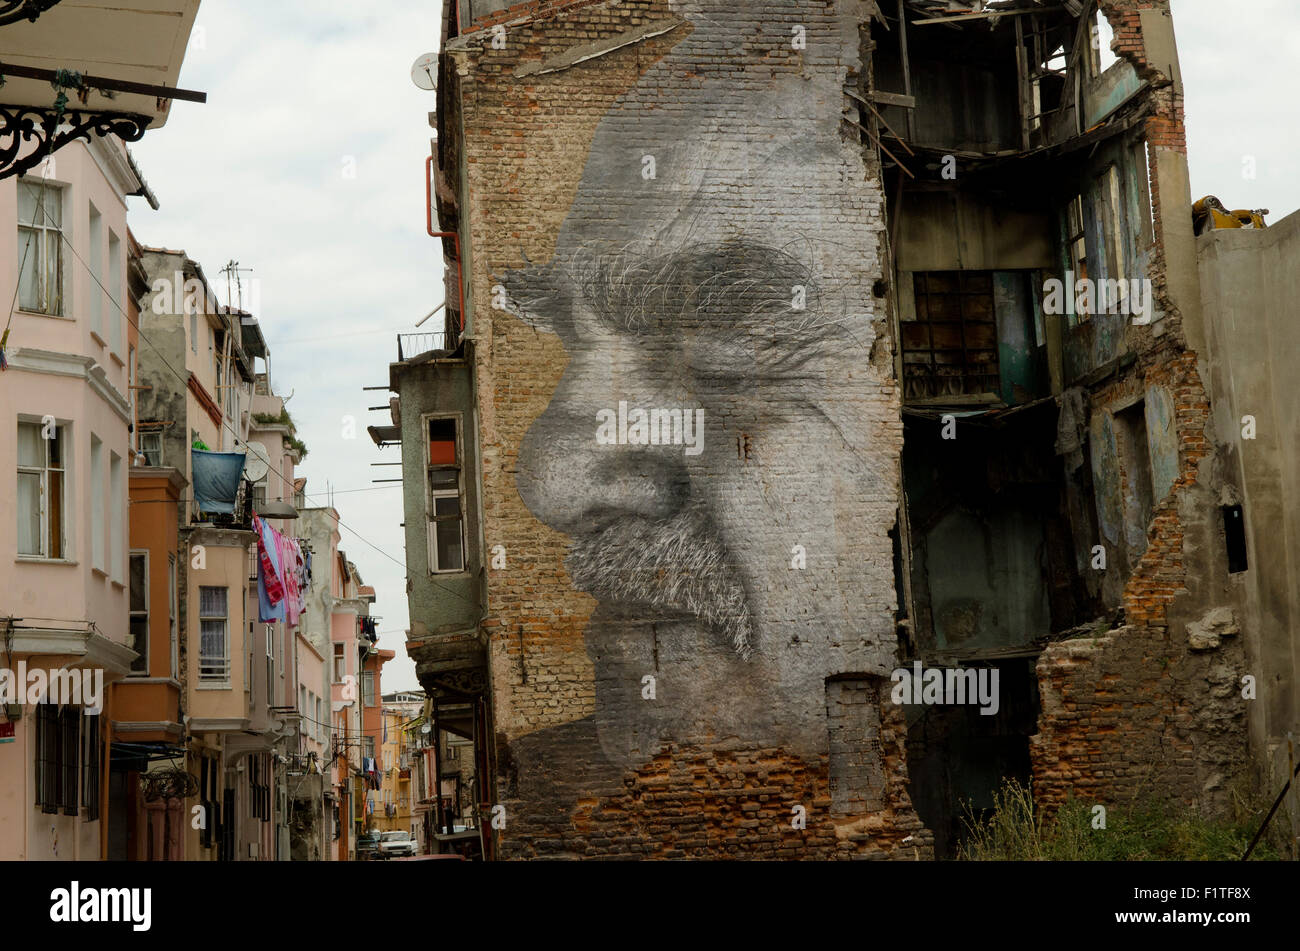 wrinkles-of-the-city-street-art-istanbul